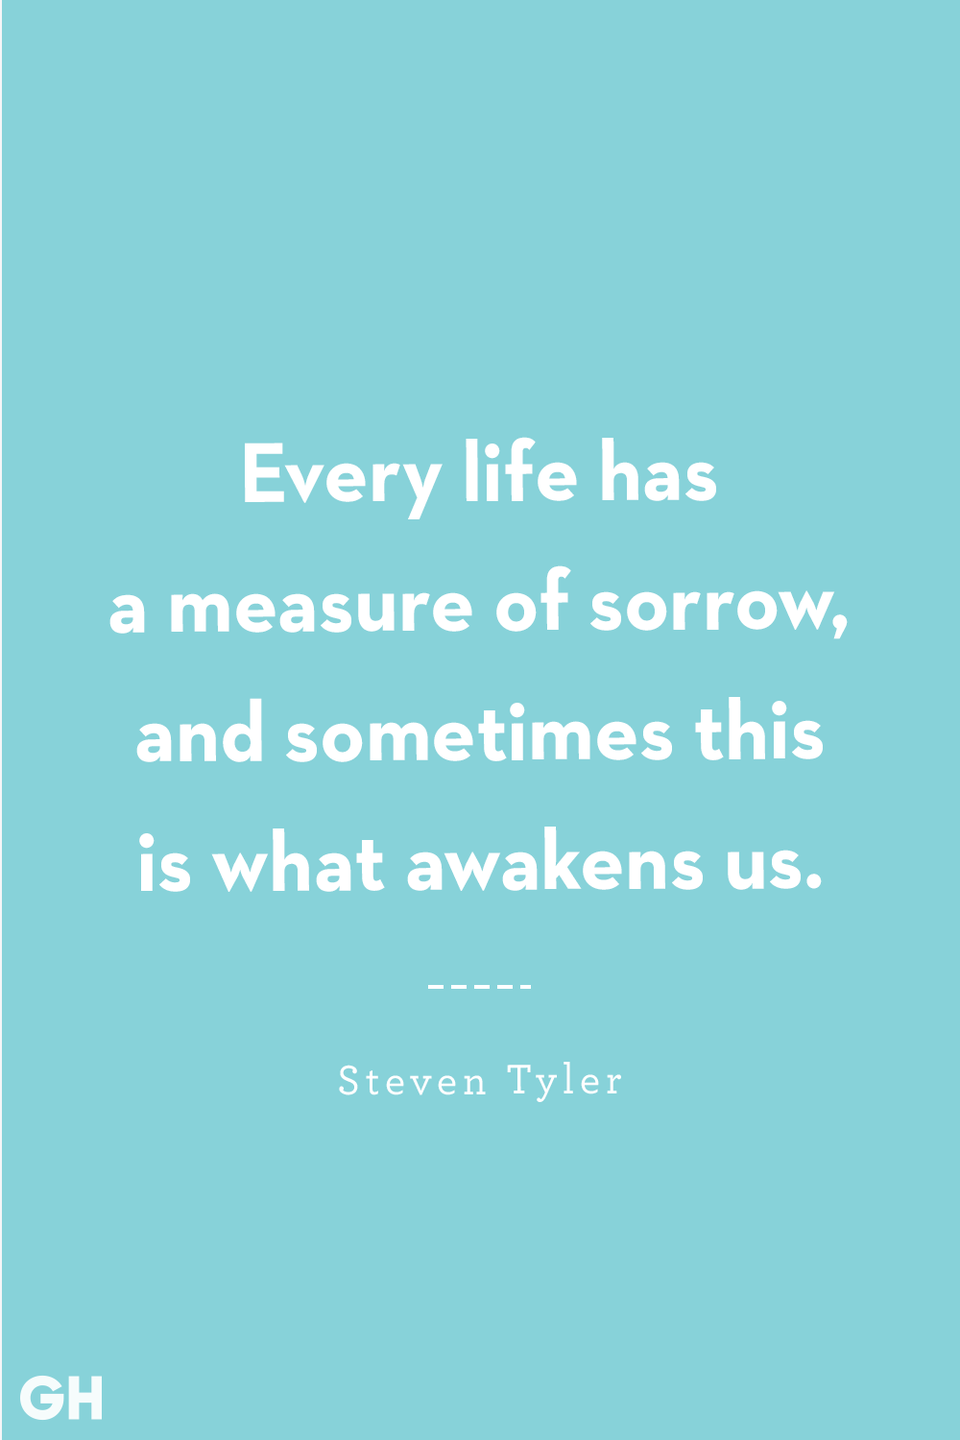 <p>Every life has a measure of sorrow, and sometimes this is what awakens us.</p>